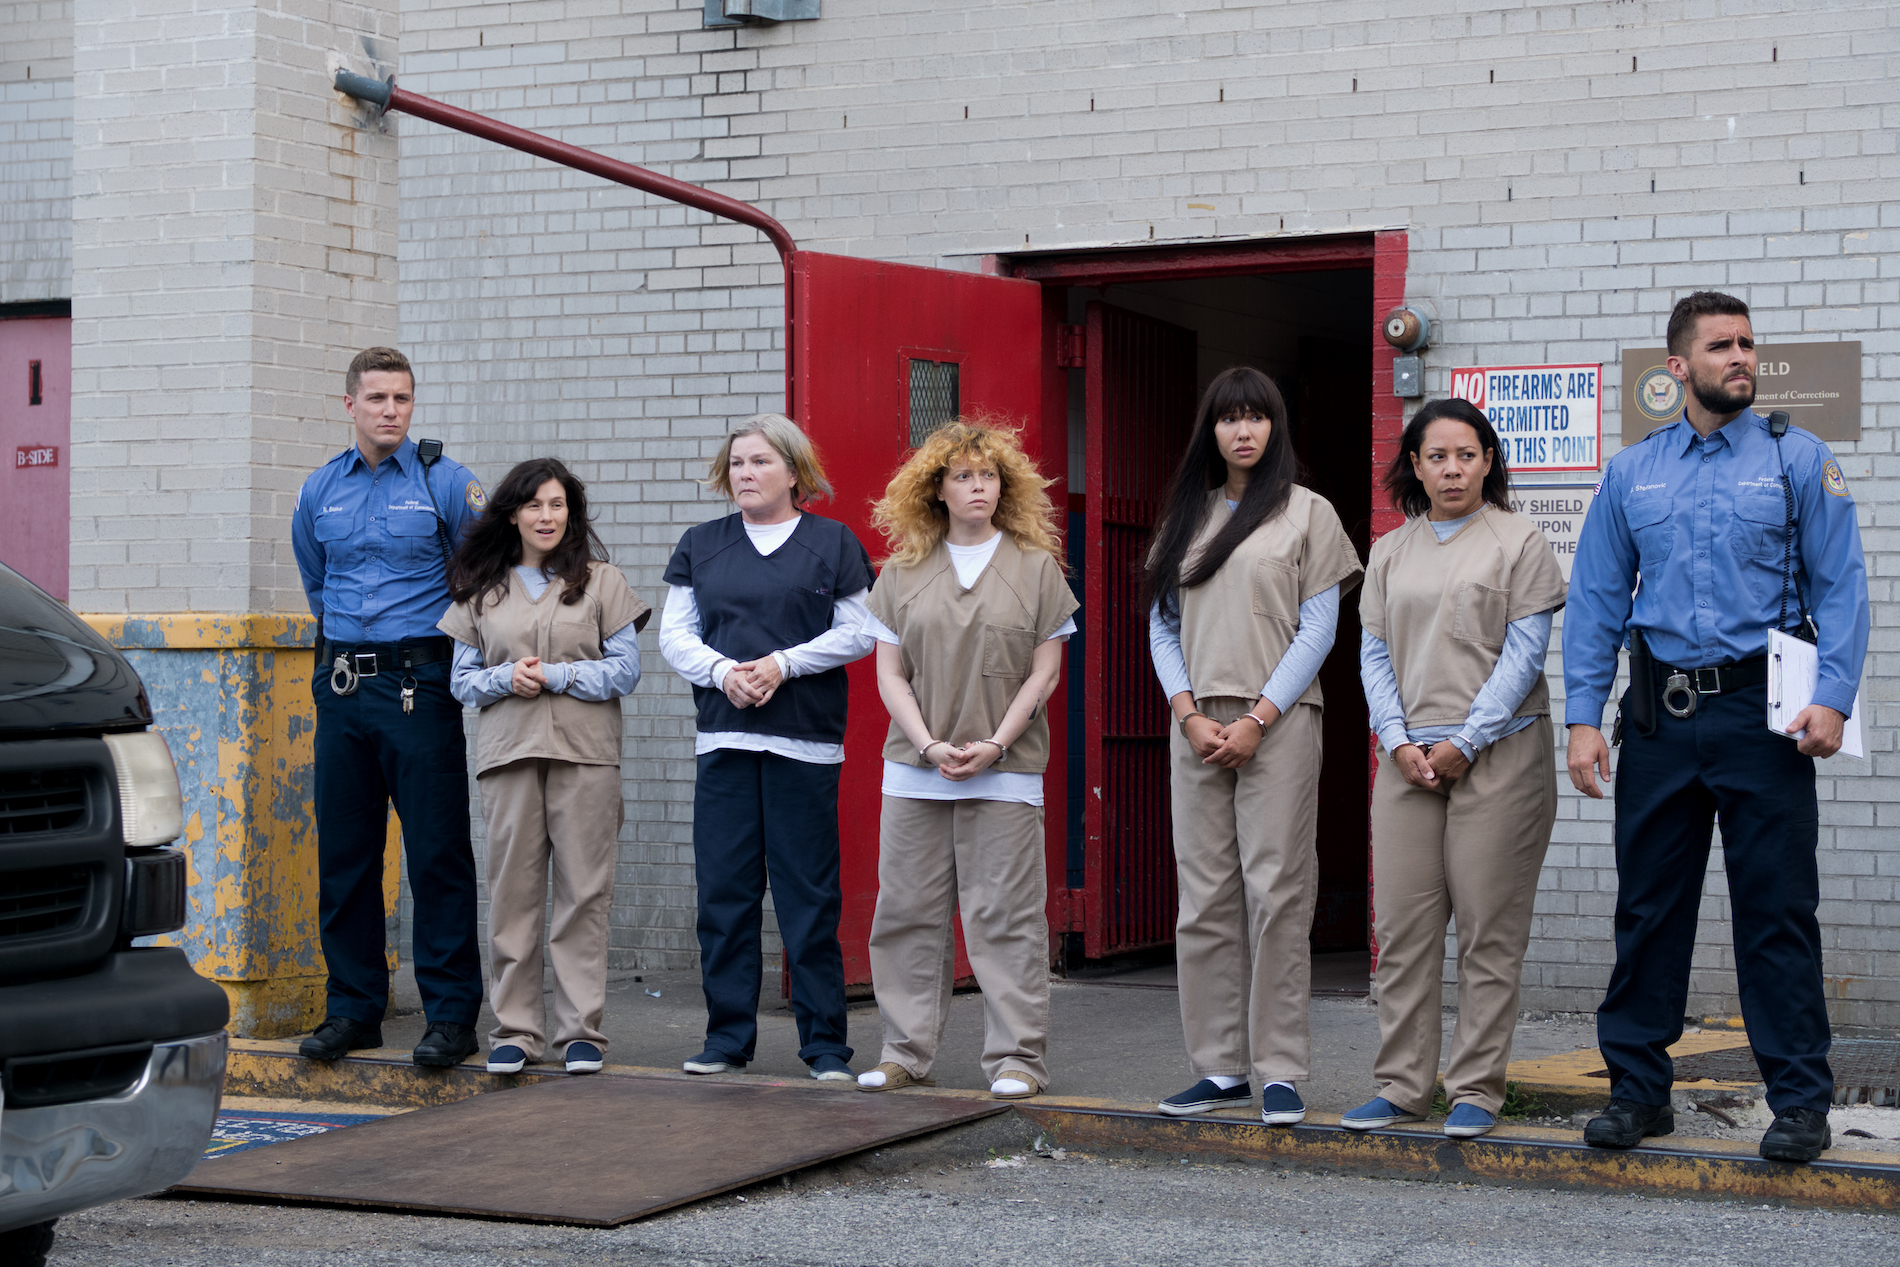 Maritza Is Back for 'Orange is the New Black's Final Season Debuting This Summer